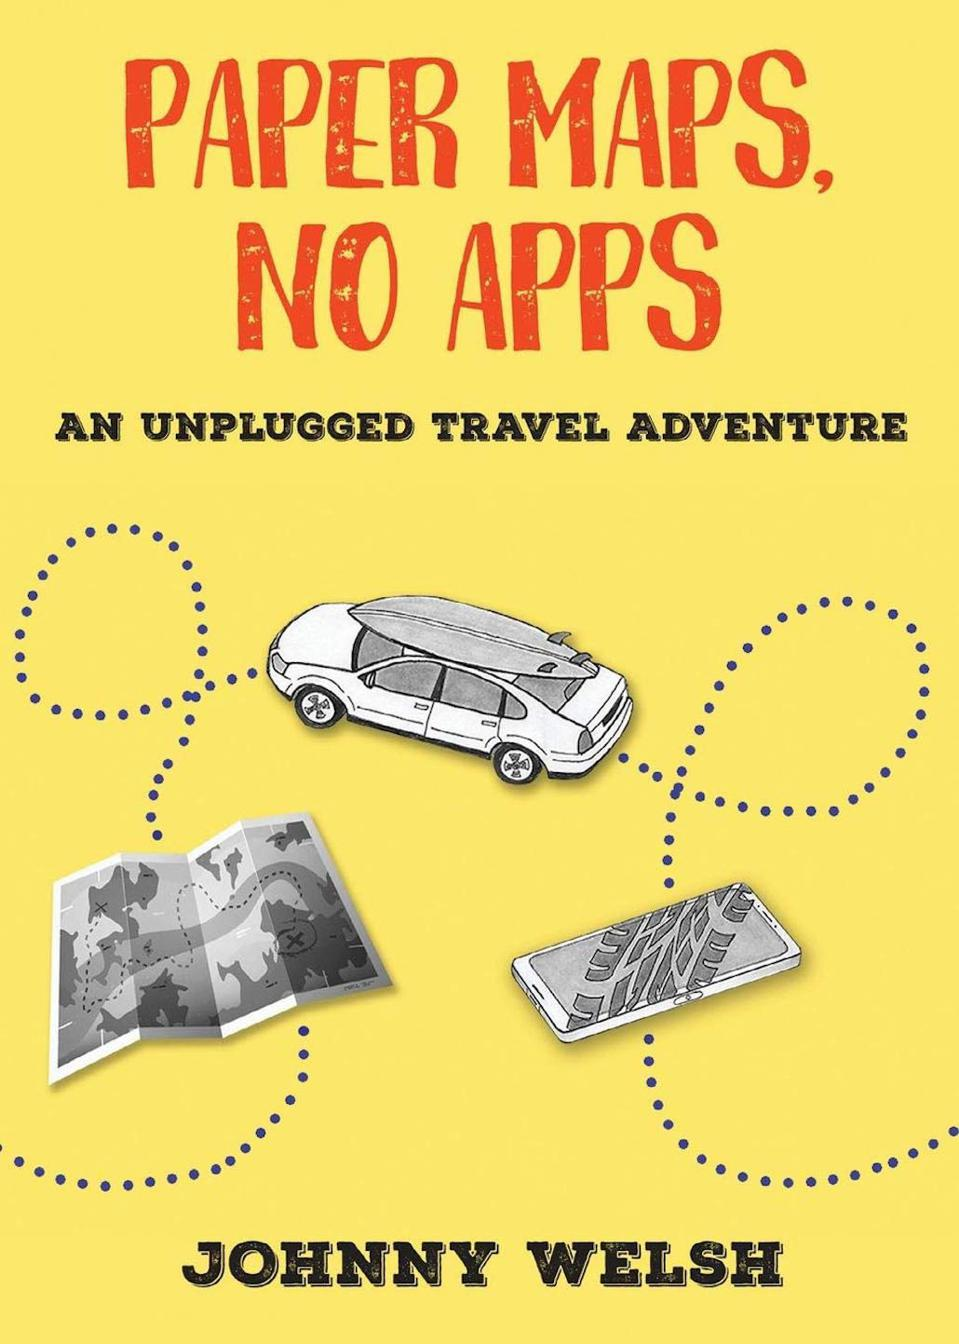 Paper Maps, No Apps: An Unplugged Travel Adventure by Johnny Welsh